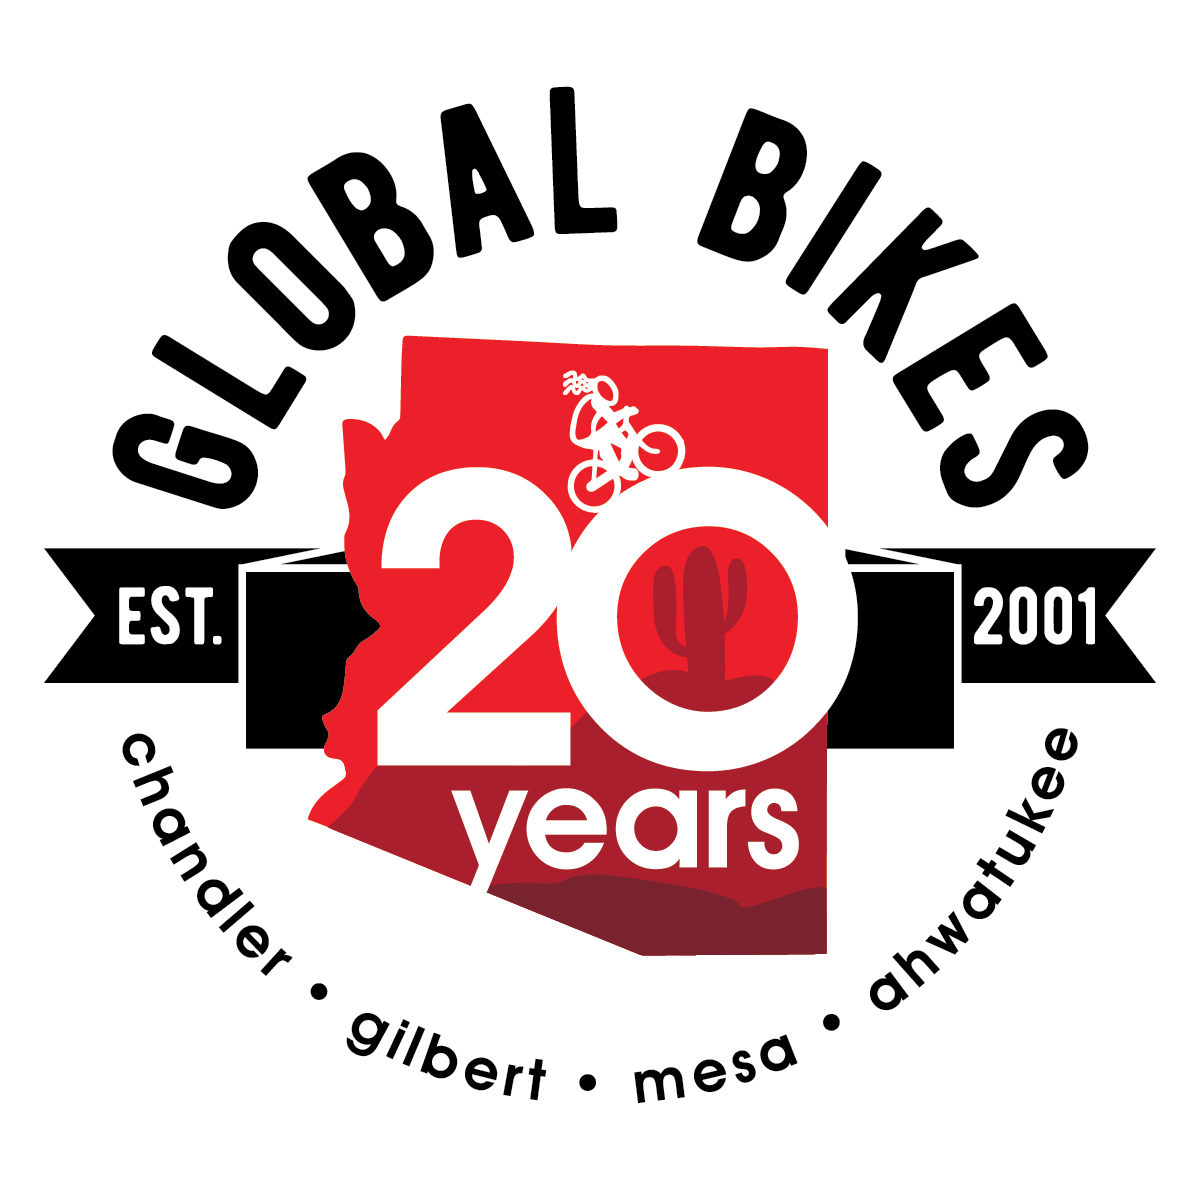 Global Bikes & E-bikes 20 Years in Arizona